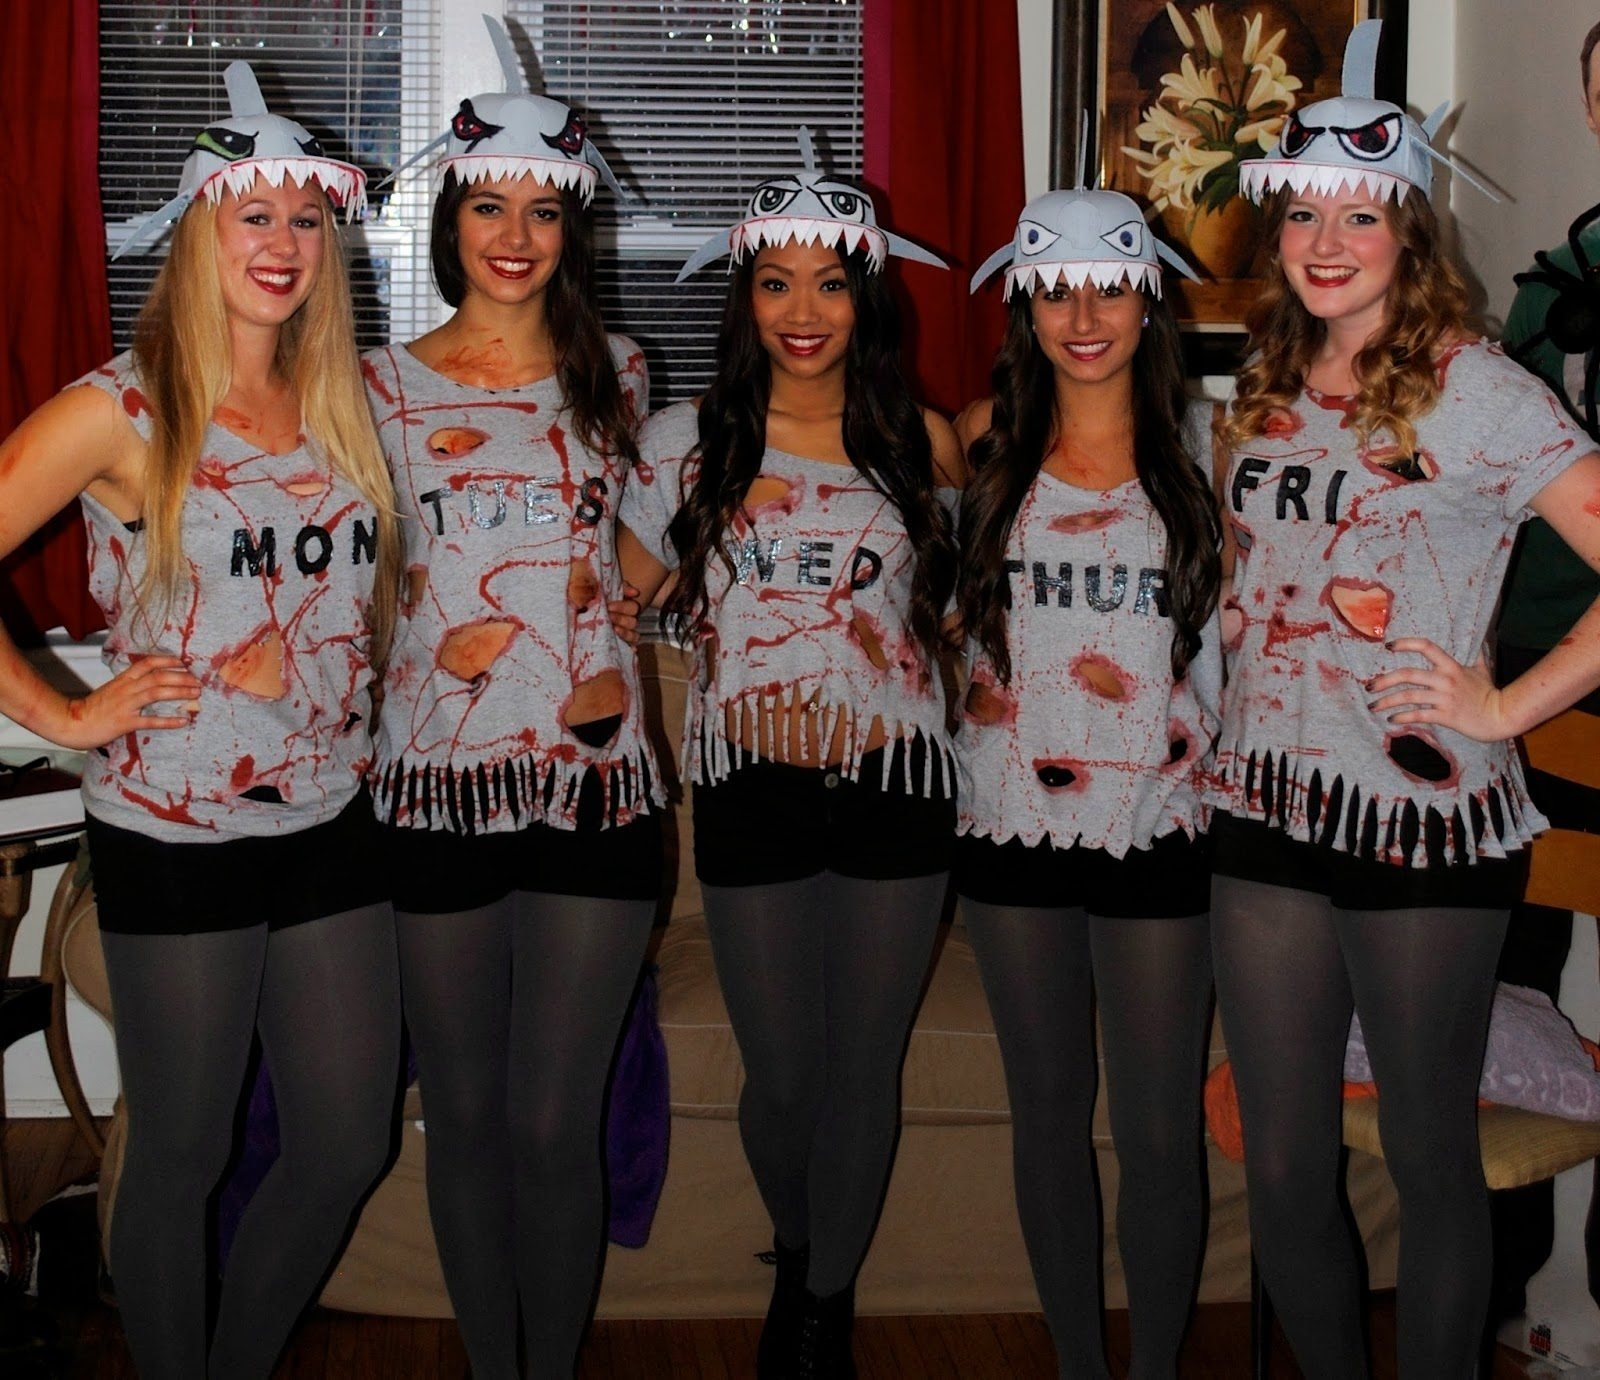 10 Cute Funny Group Halloween Costume Ideas this list of group halloween costume ideas will blow your mind 2 2021